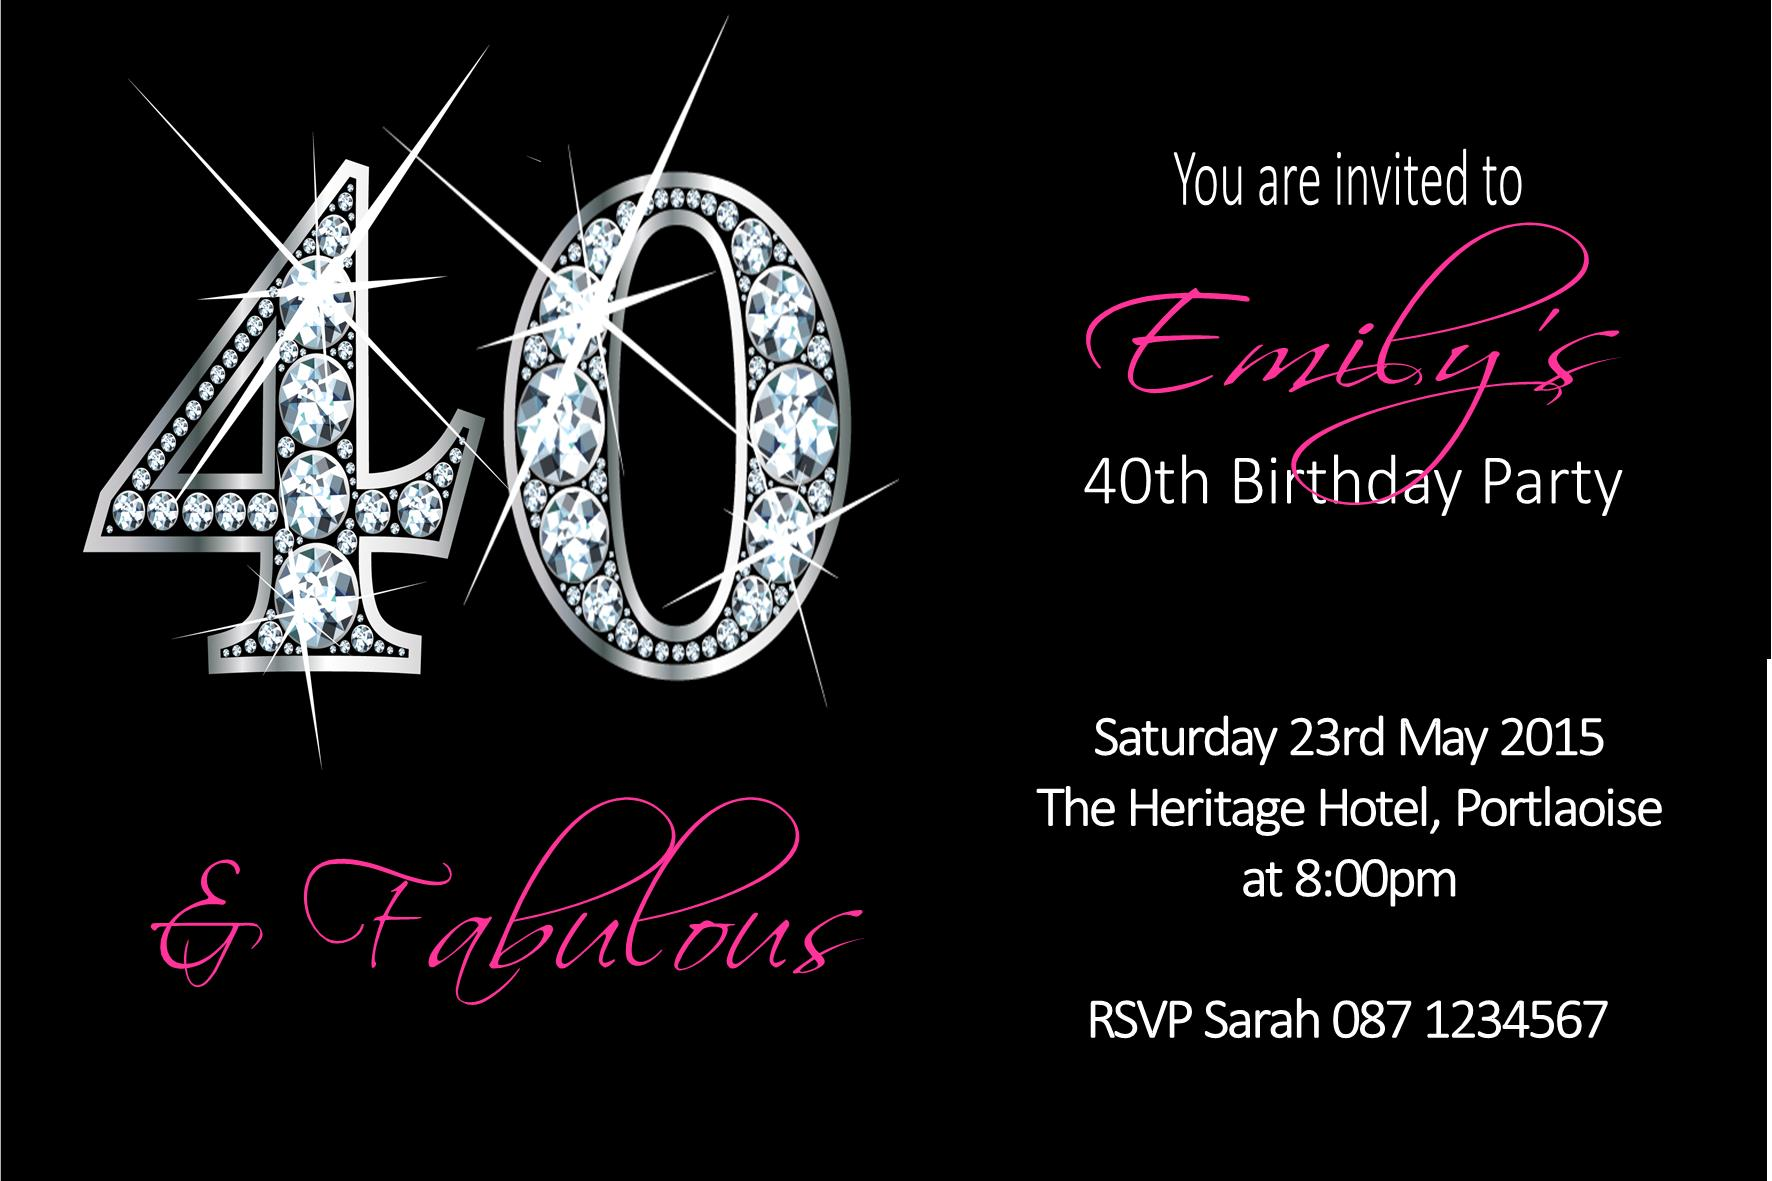 Personalised Birthday Invitation Design 41 2809 P